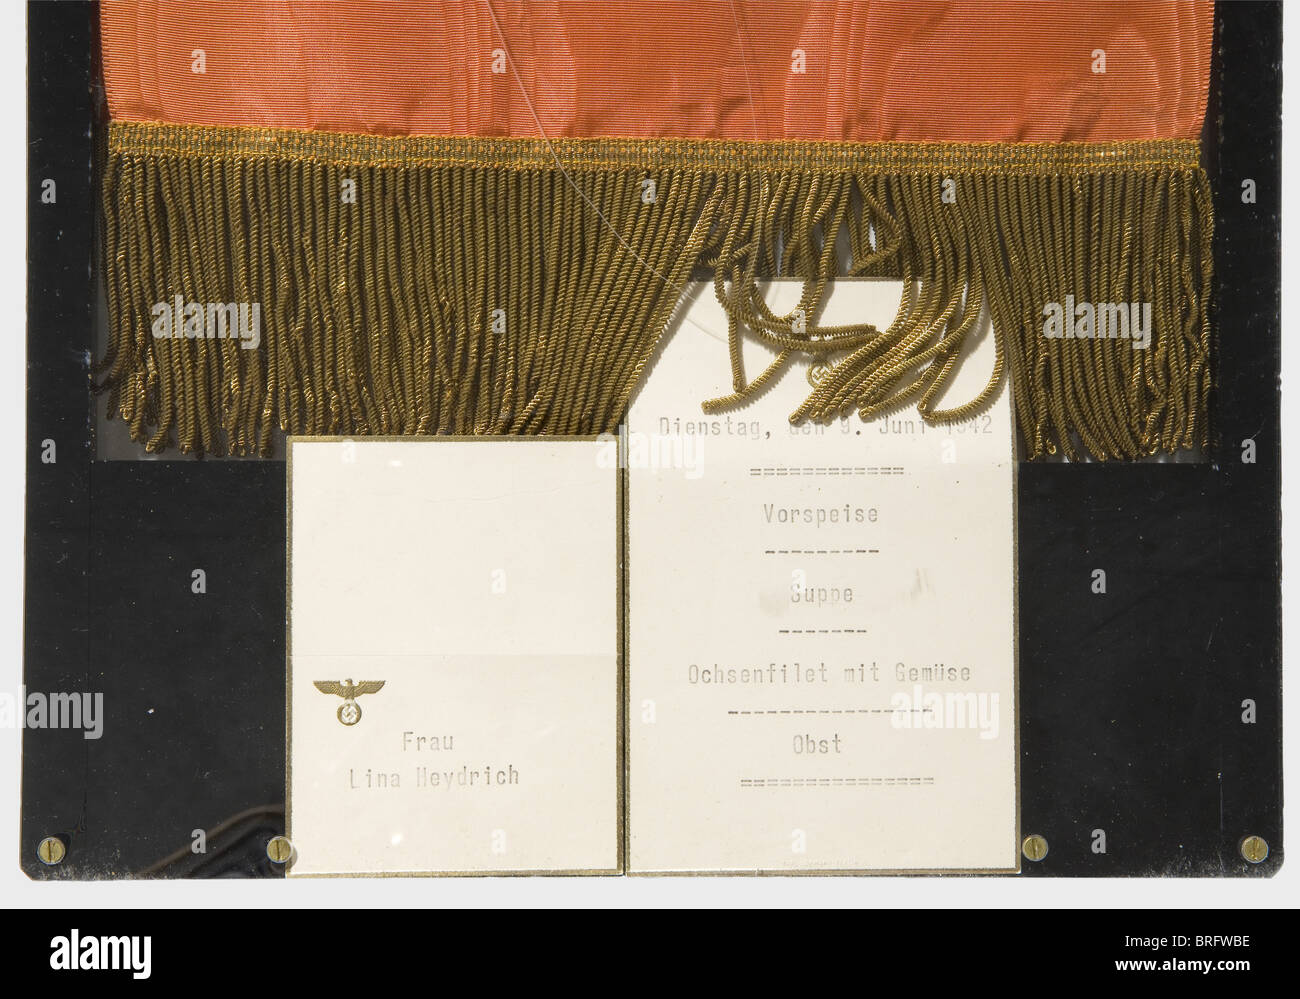 Adolf Hitler - a wreath ribbon for the funeral ceremonies for Reinhard Heydrich, on 9 June 1942 at the Mosaic Hall - Stock Image